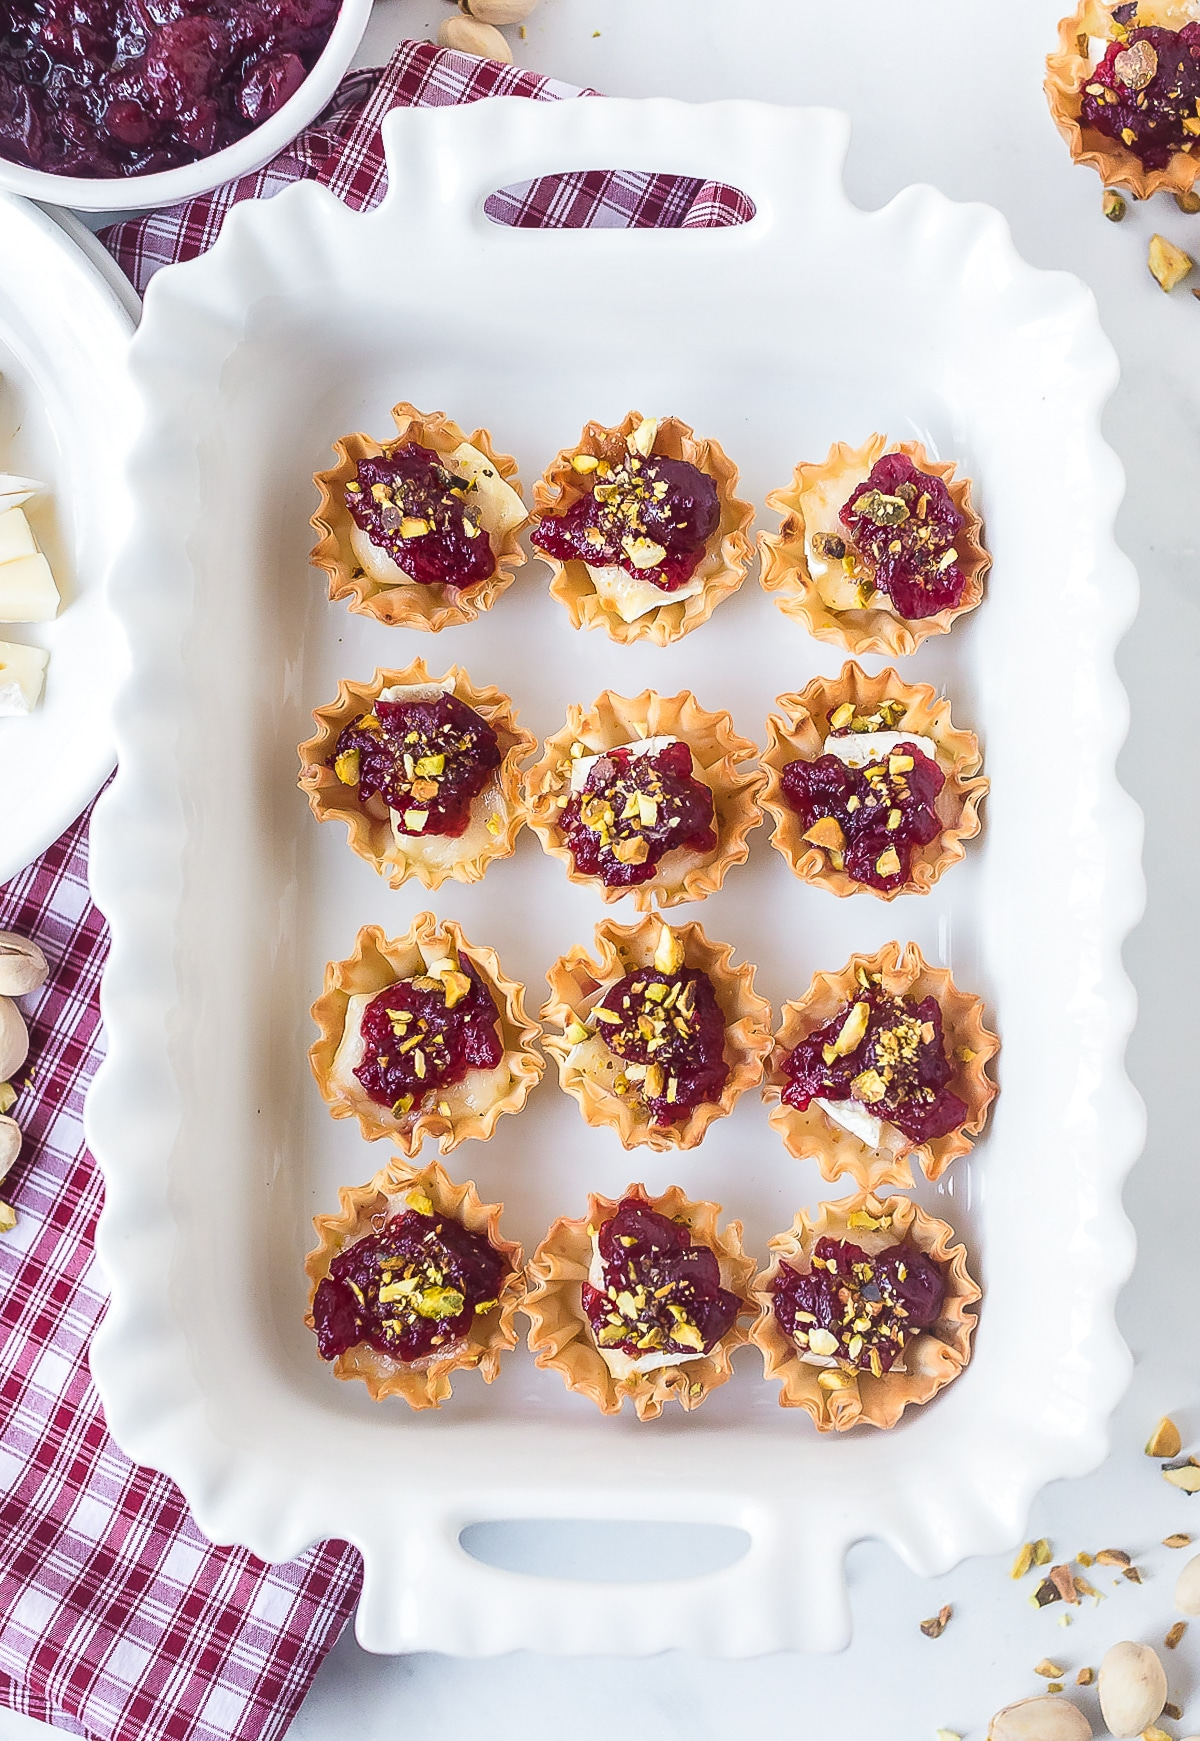 Baked Brie Bites Recipe with Cranberry Sauce #ASpicyPerspective #brie #baked #cranberry